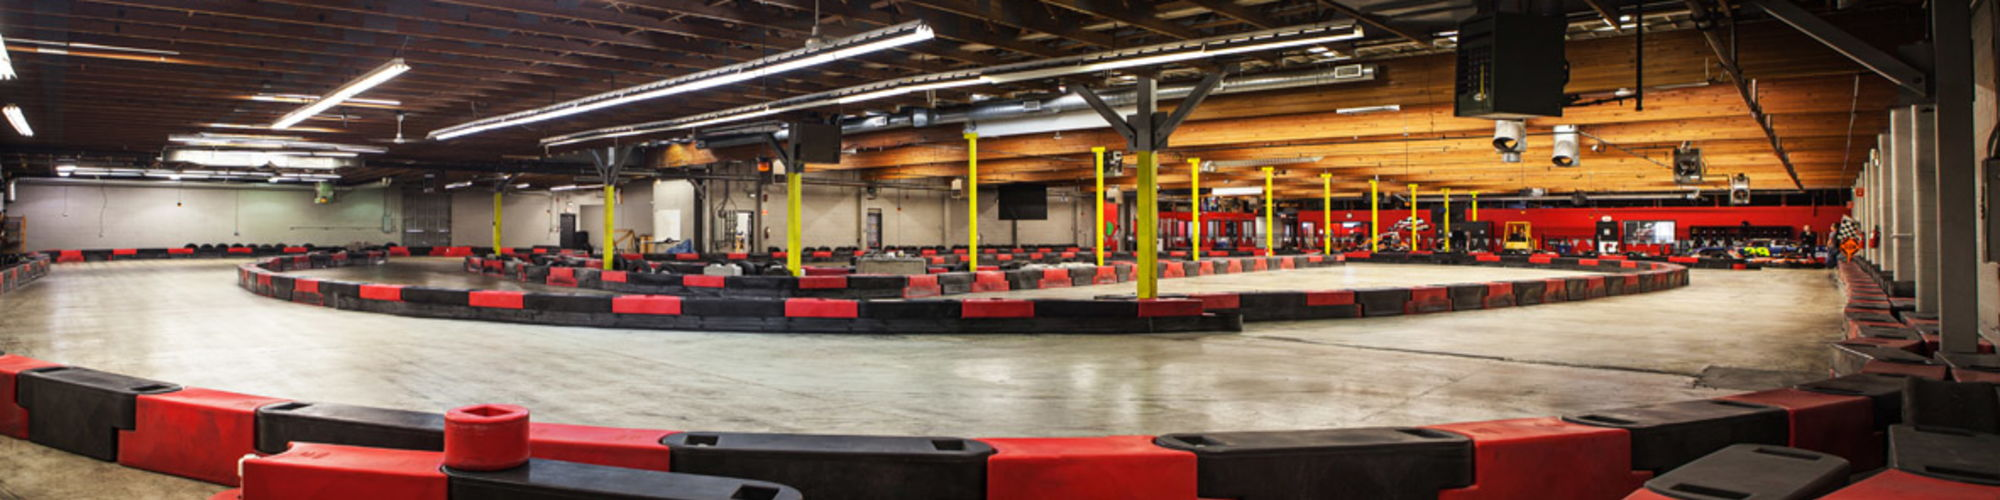 Fast Track Indoor Karting cover image